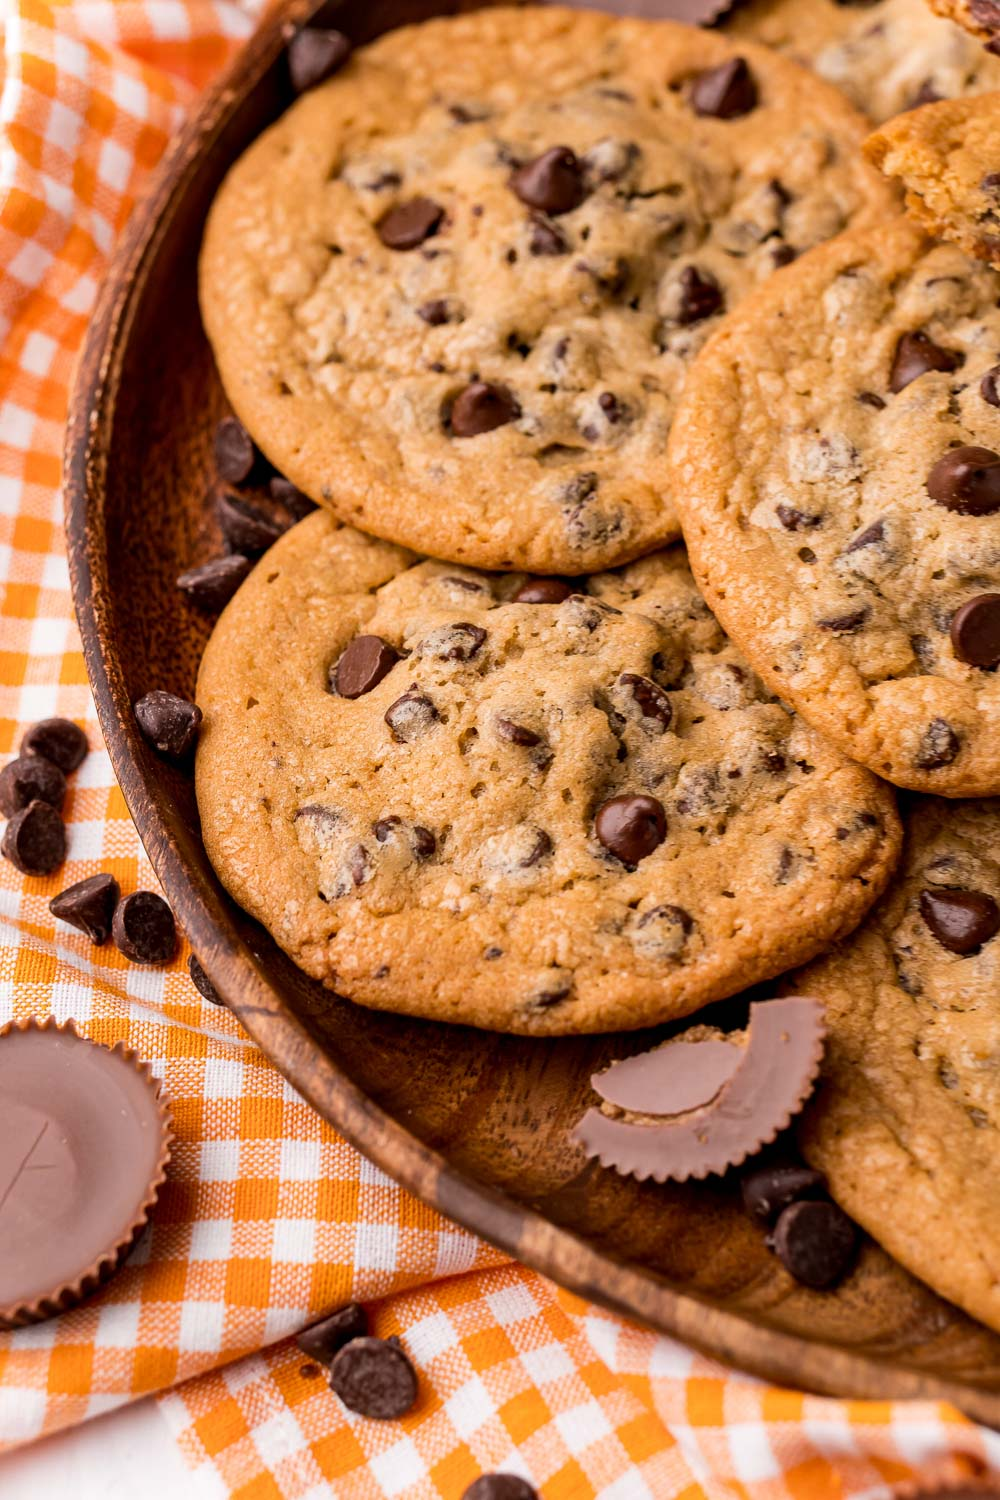 A close up picture of Reese's Stuffed Cookies on a wooden platter.